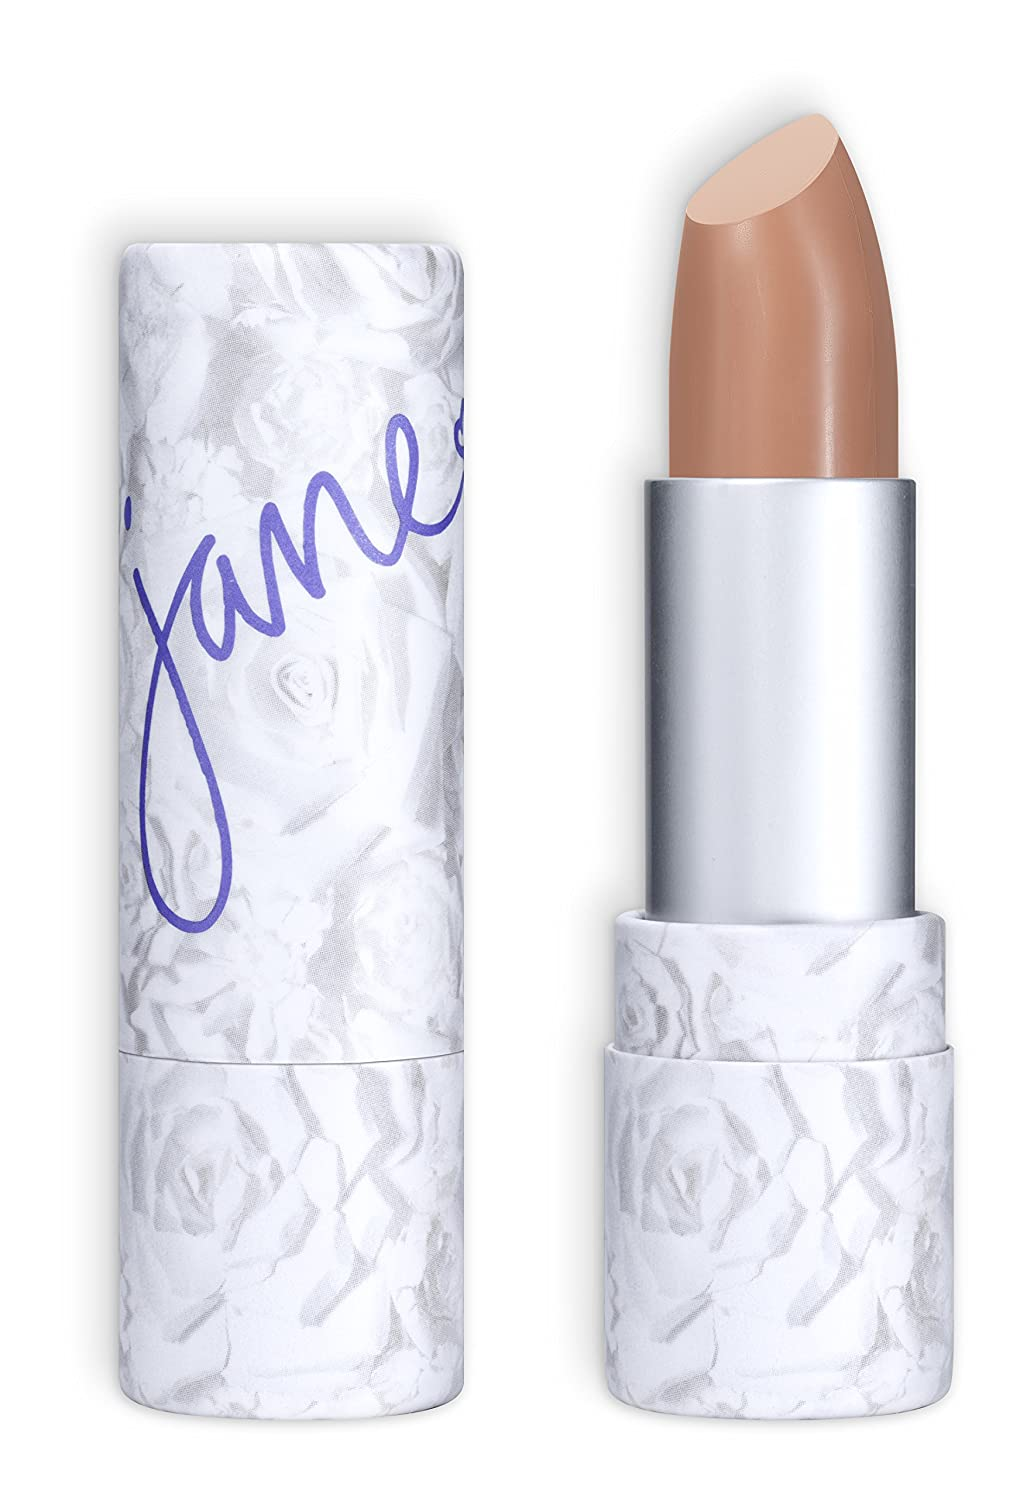 Jane Cosmetics My Pout Lipstick, Perfect Angel, 0.13 Ounce